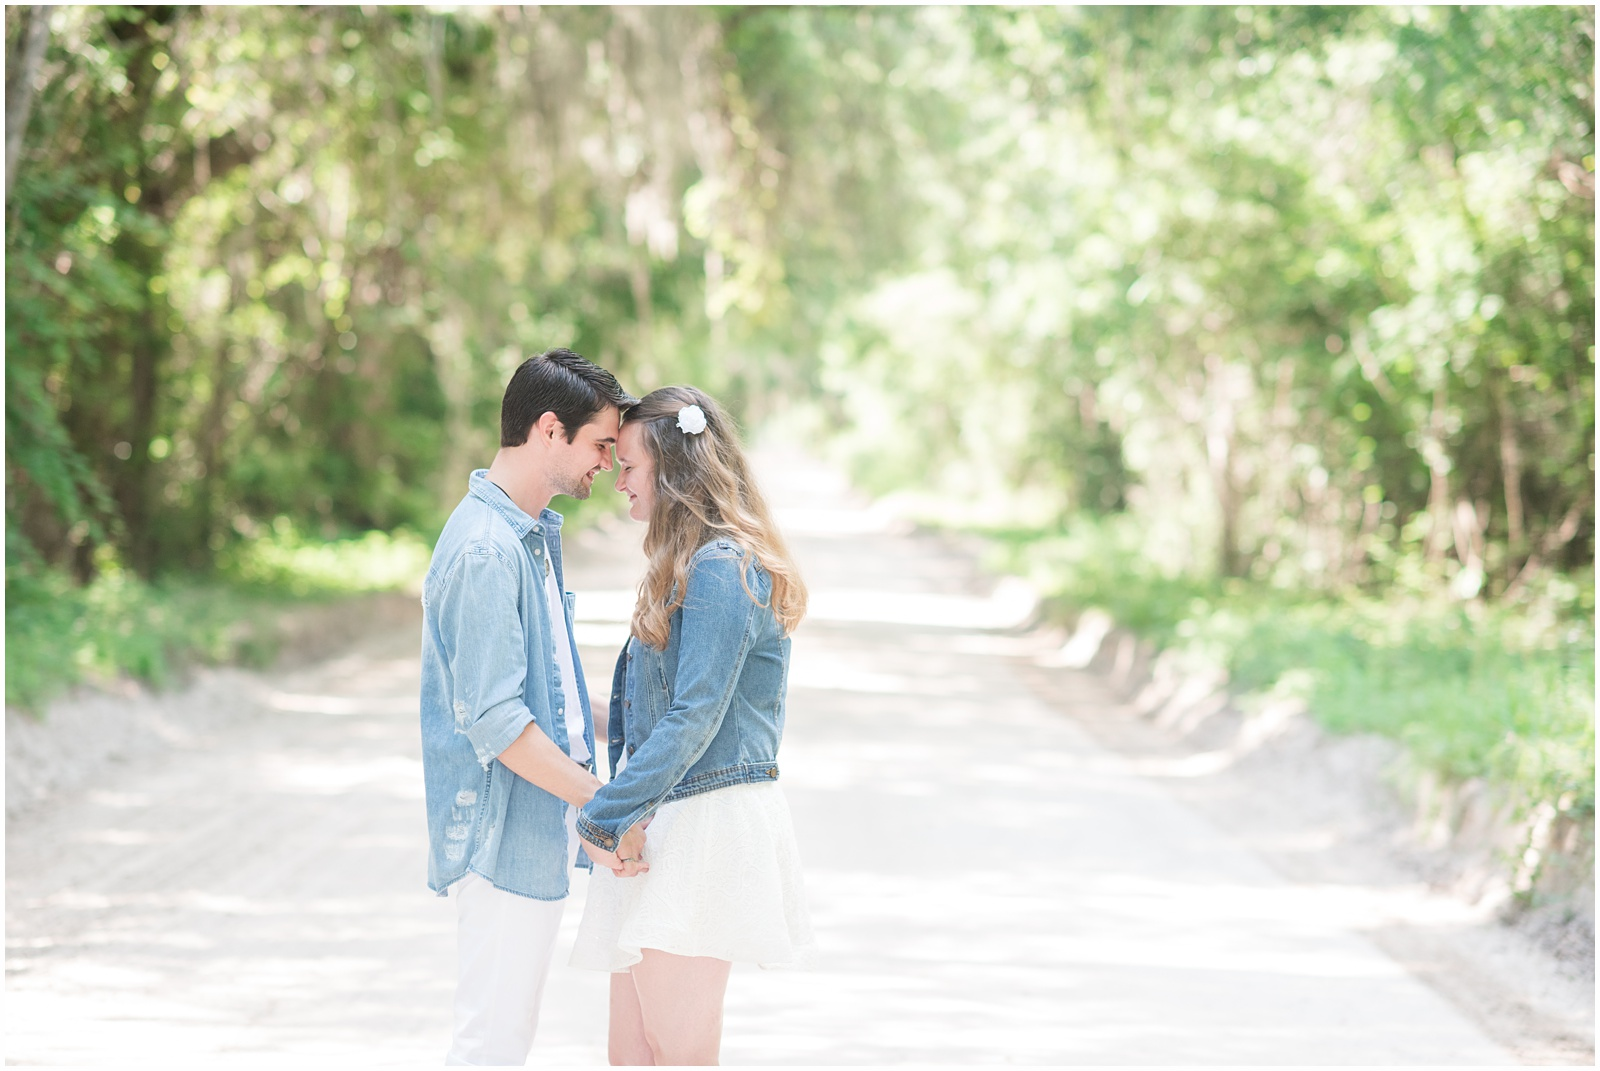 Fort White_Florida_Outdoor_Engagement_Portraits_4.jpg